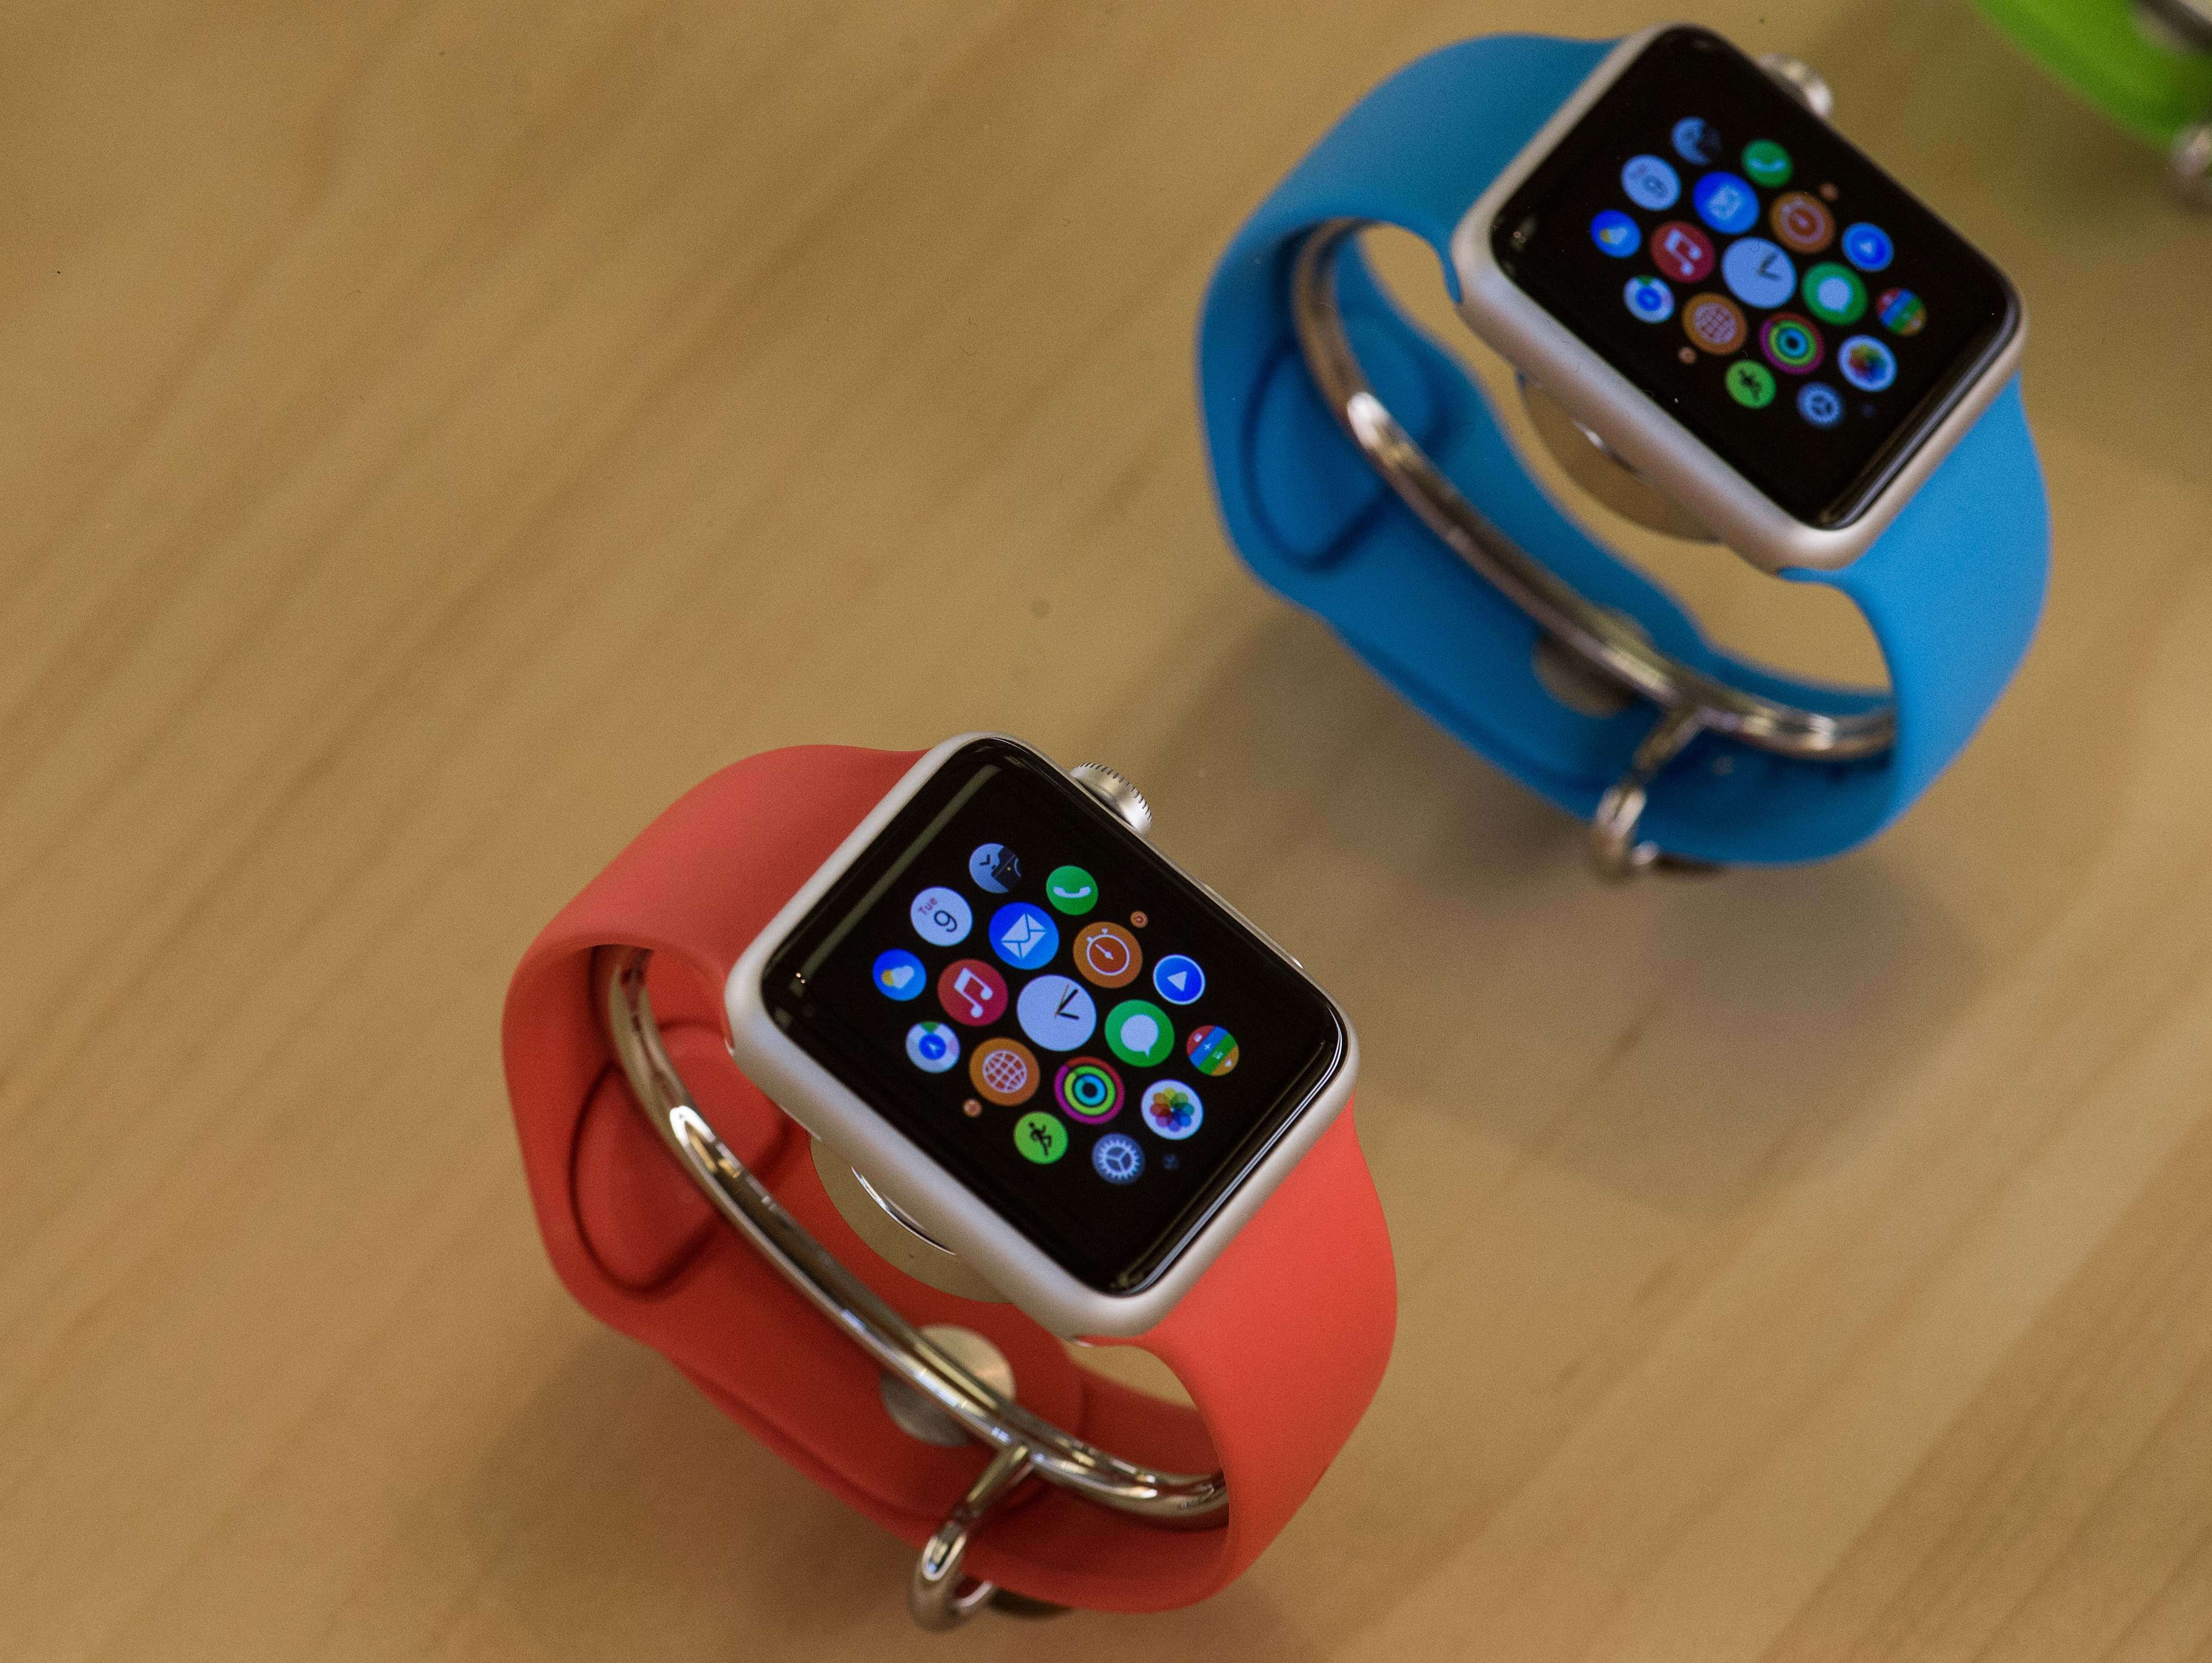 Apple Watch will now be available in Best Buy locations around the country